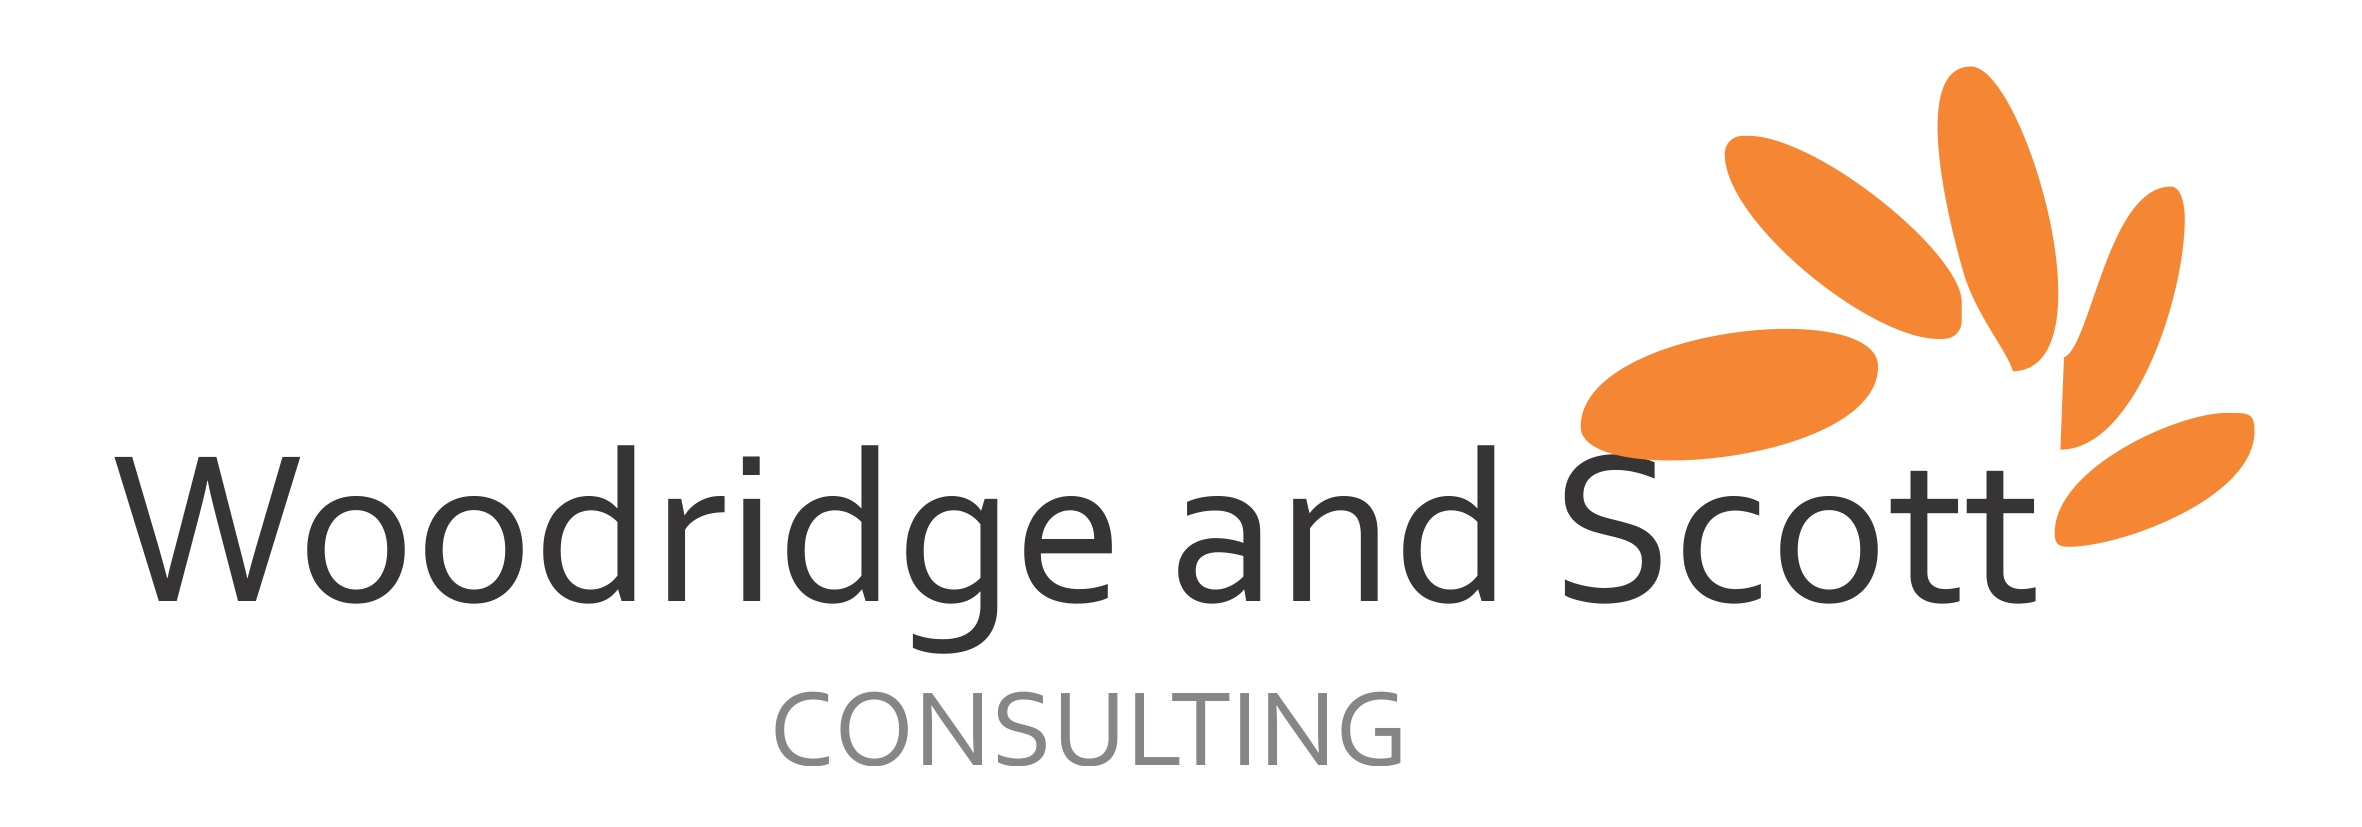 WOODRIDGE AND SCOTT Consulting Services